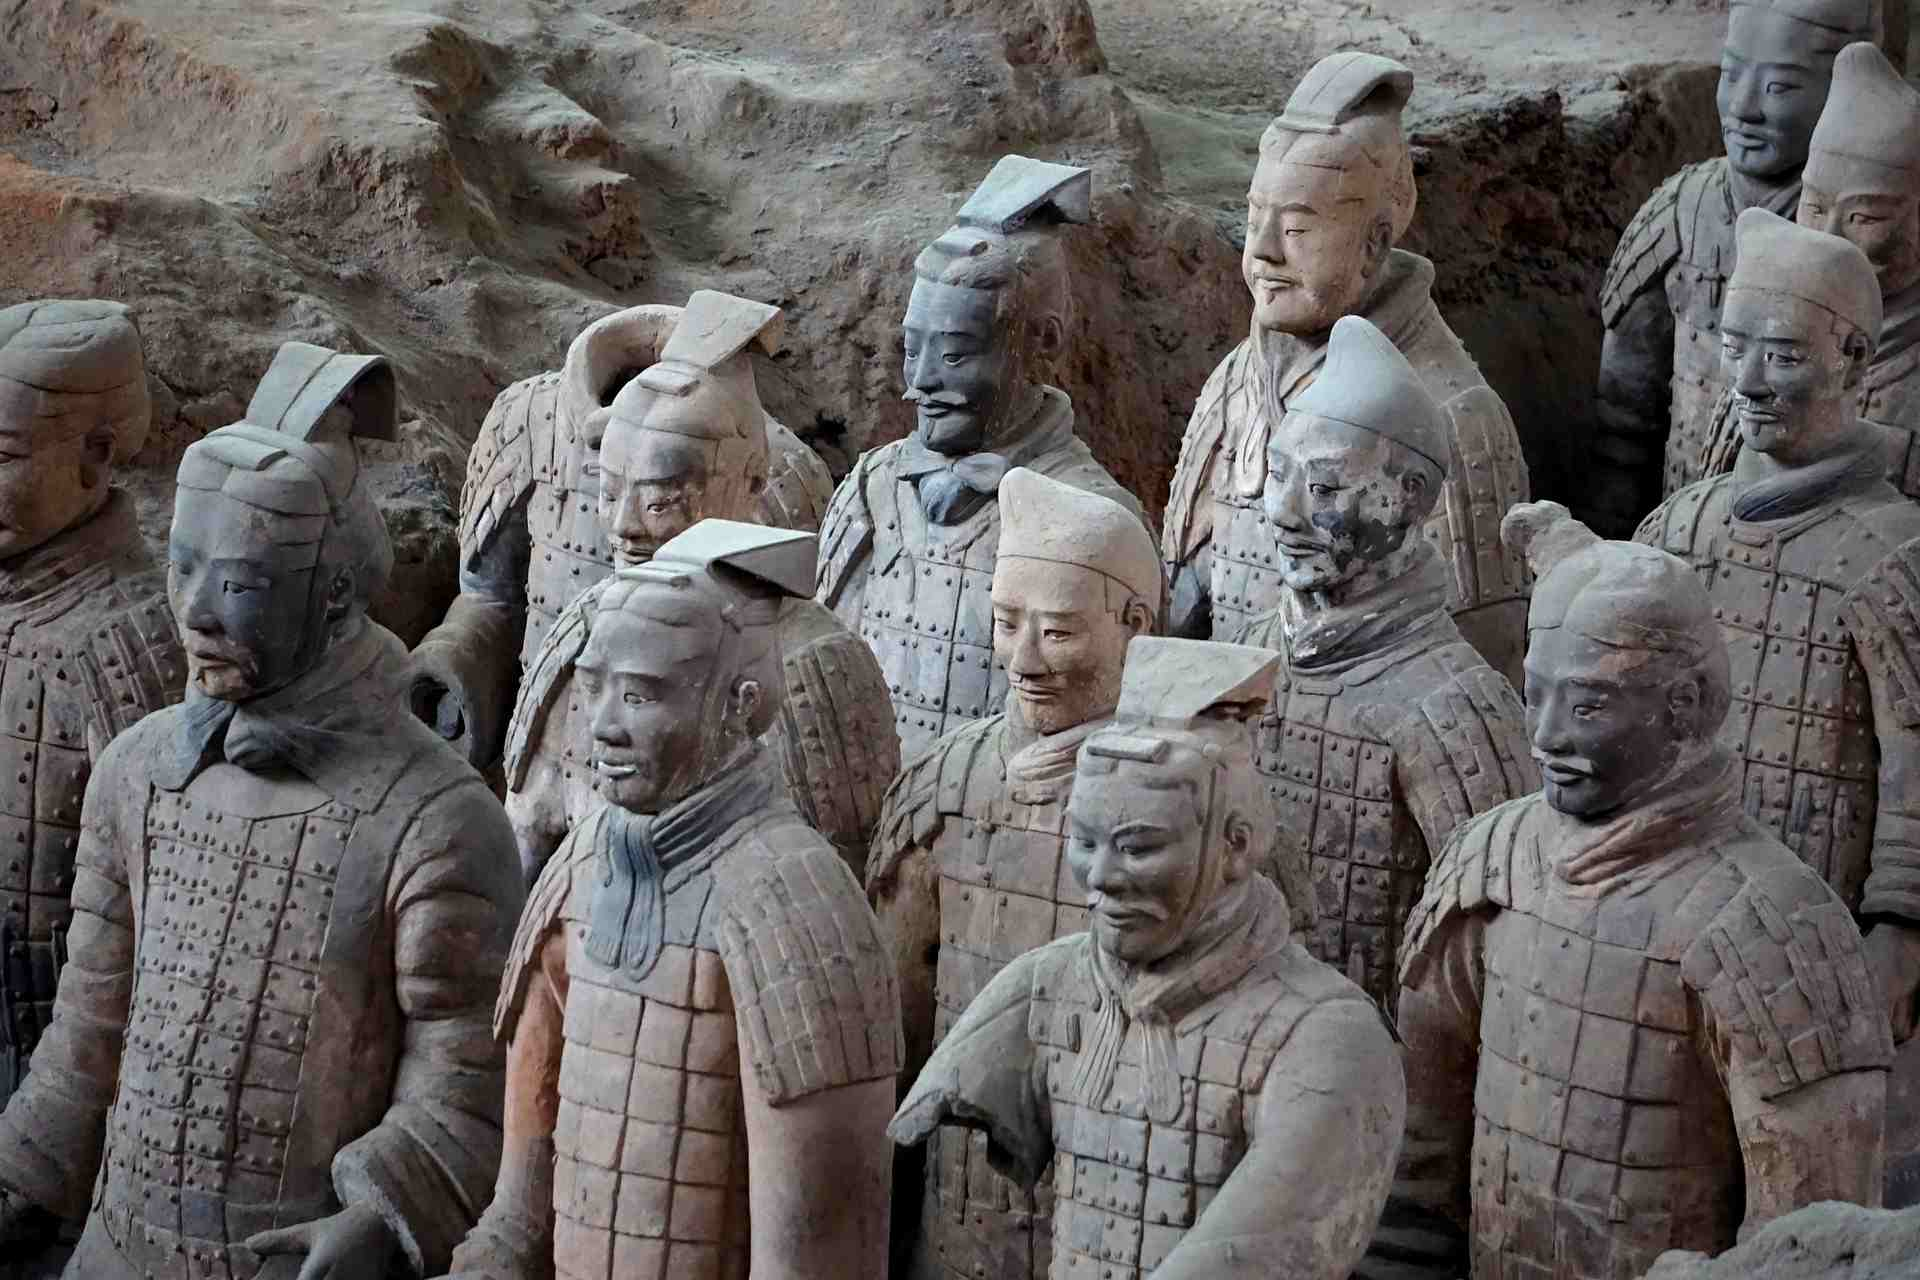 Close up view of terracotta soldiers with different faces.